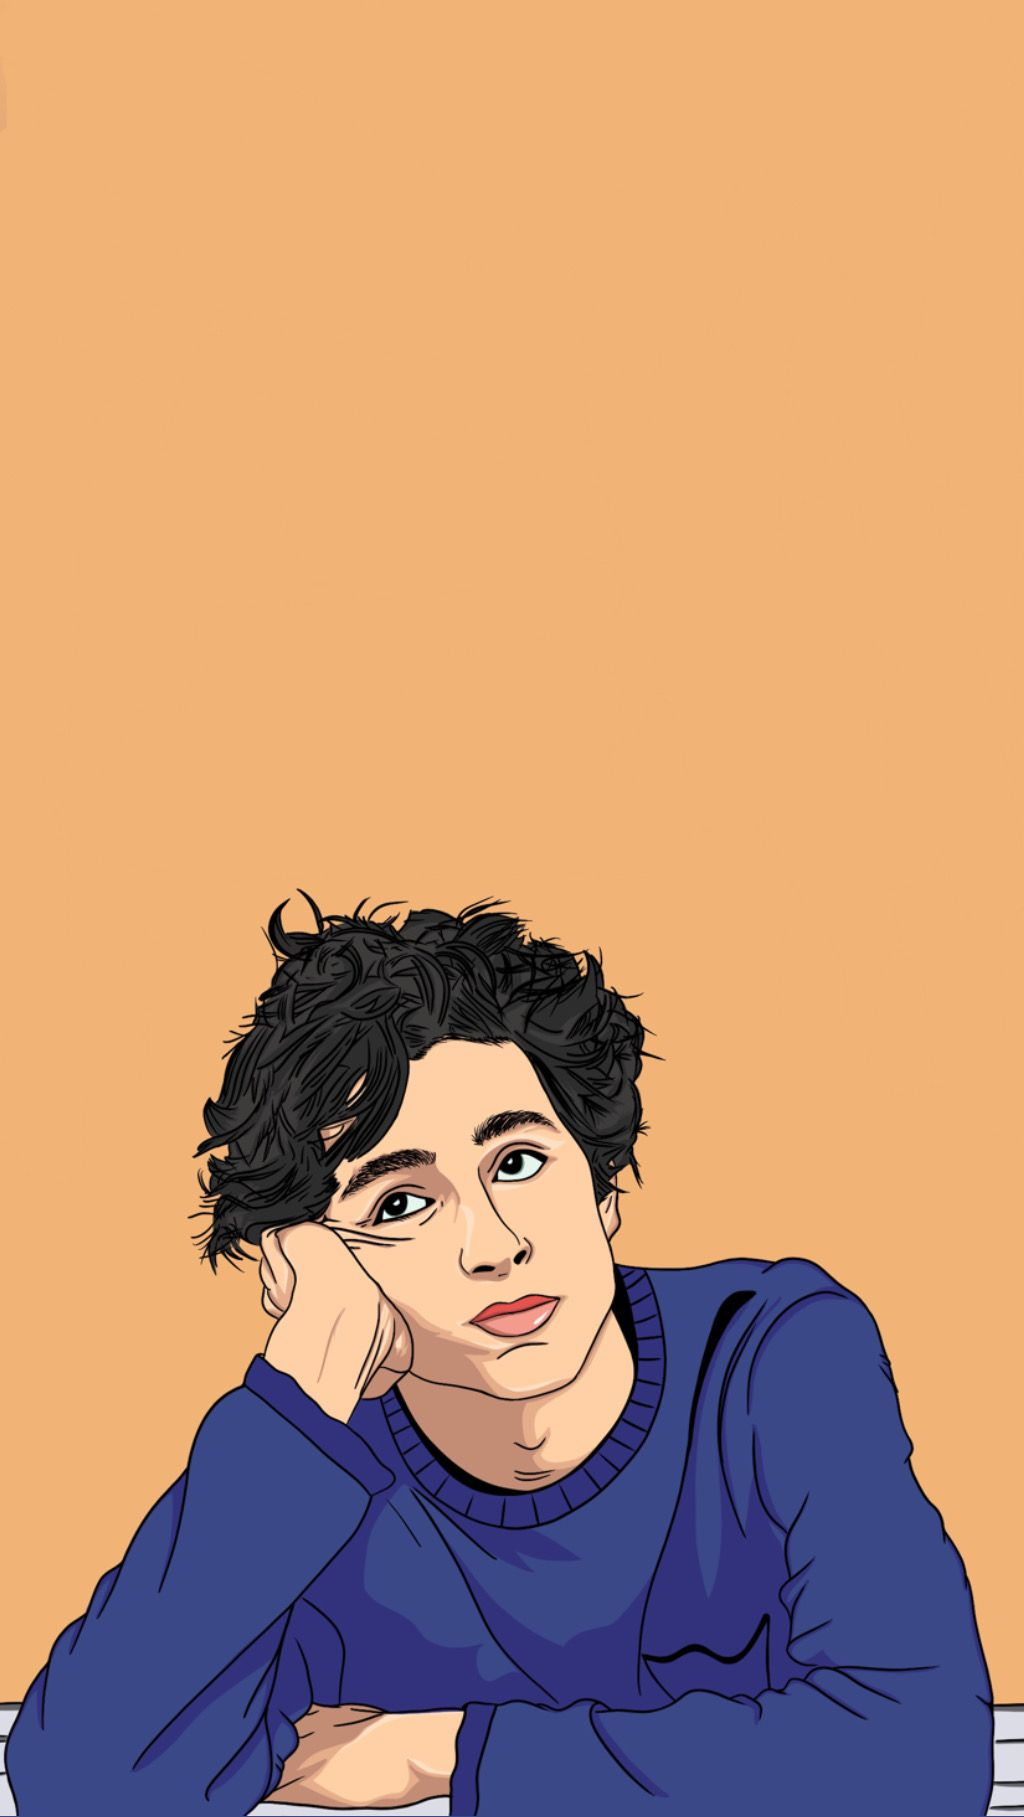 The Little Boy With Curly Hair Png And Clipart Boys With Curly Hair Curly Hair Styles Hair Png